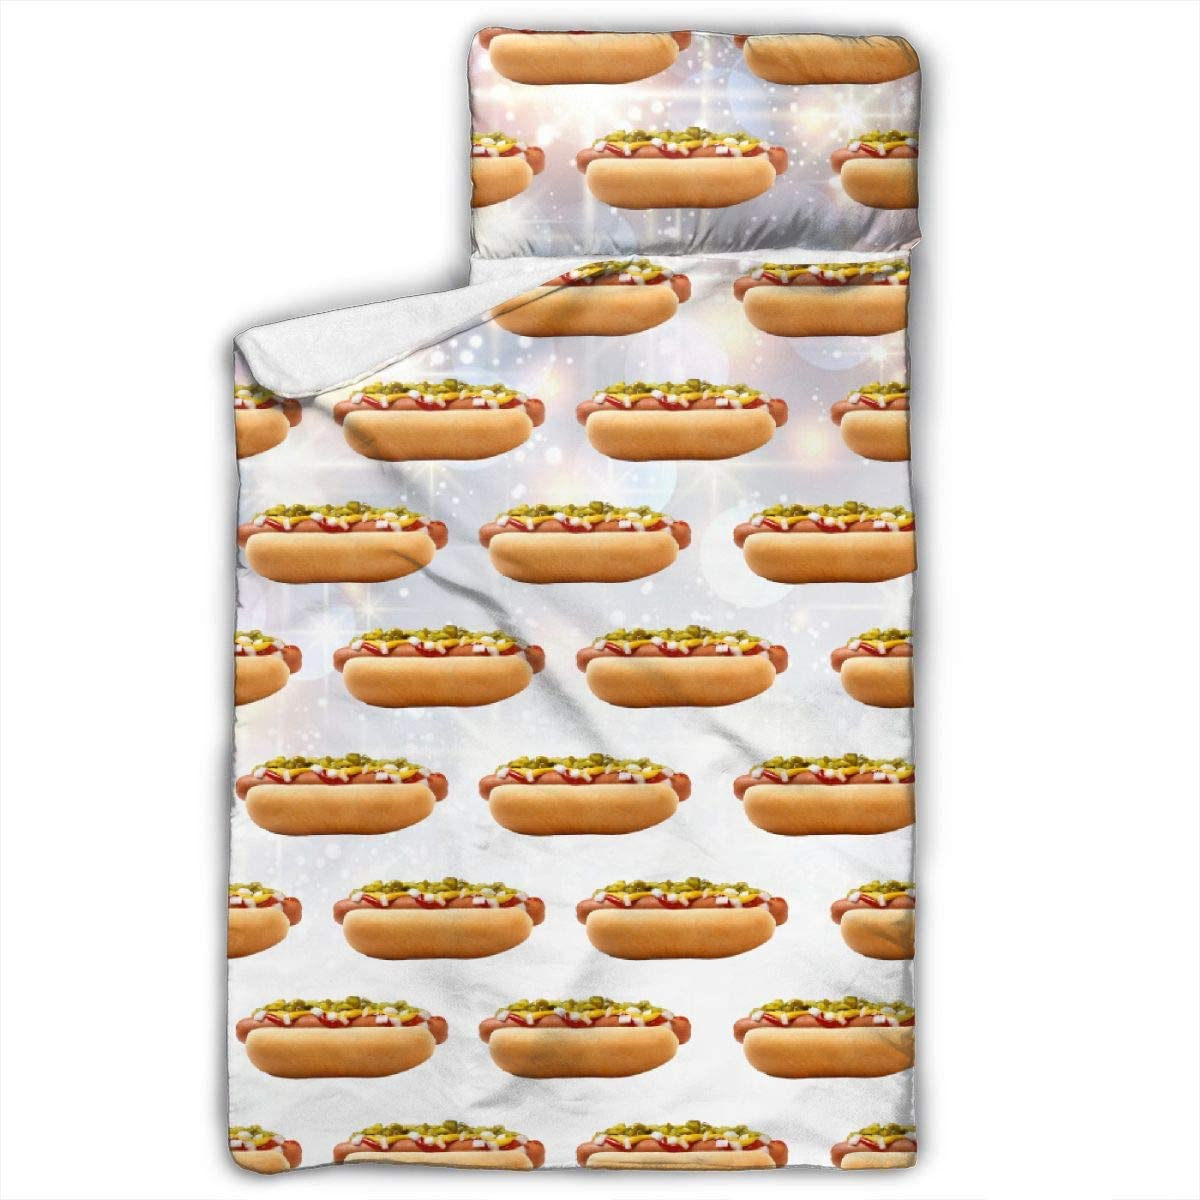 Yuyuy Toddler Nap Mat Hot Dog Children Sleeping Bag with Pillow for Preschool, Daycare 50 X 20 Inches